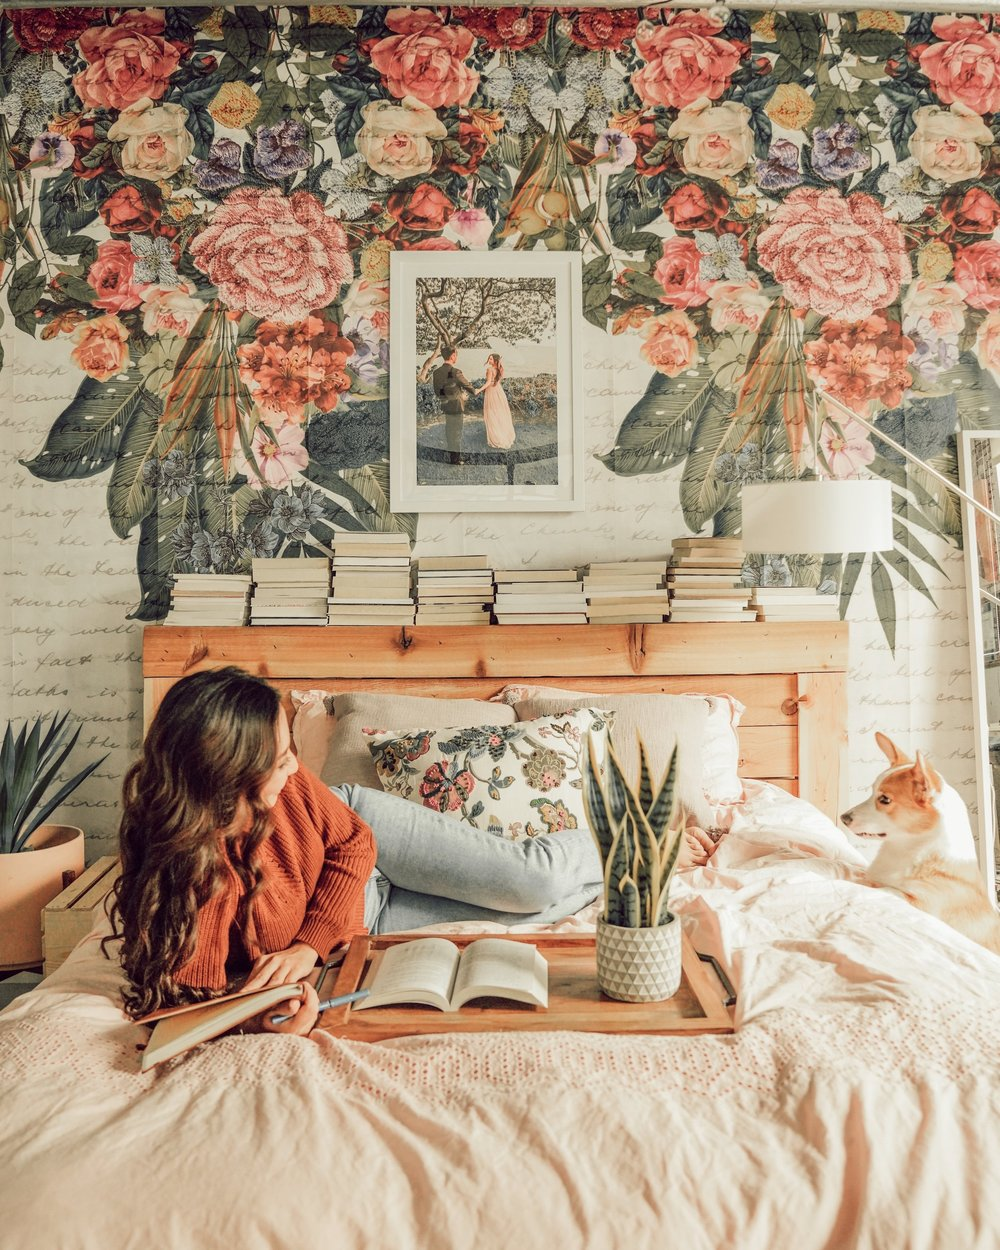 How to Turn Your Bedroom Into a Floral Haven - Floral walls, floral pillows, floral bedsheets and just about every other piece of decor that you can possibly imagine. Why hold back if your one and only goal is to surround yourself in a floral haven?!